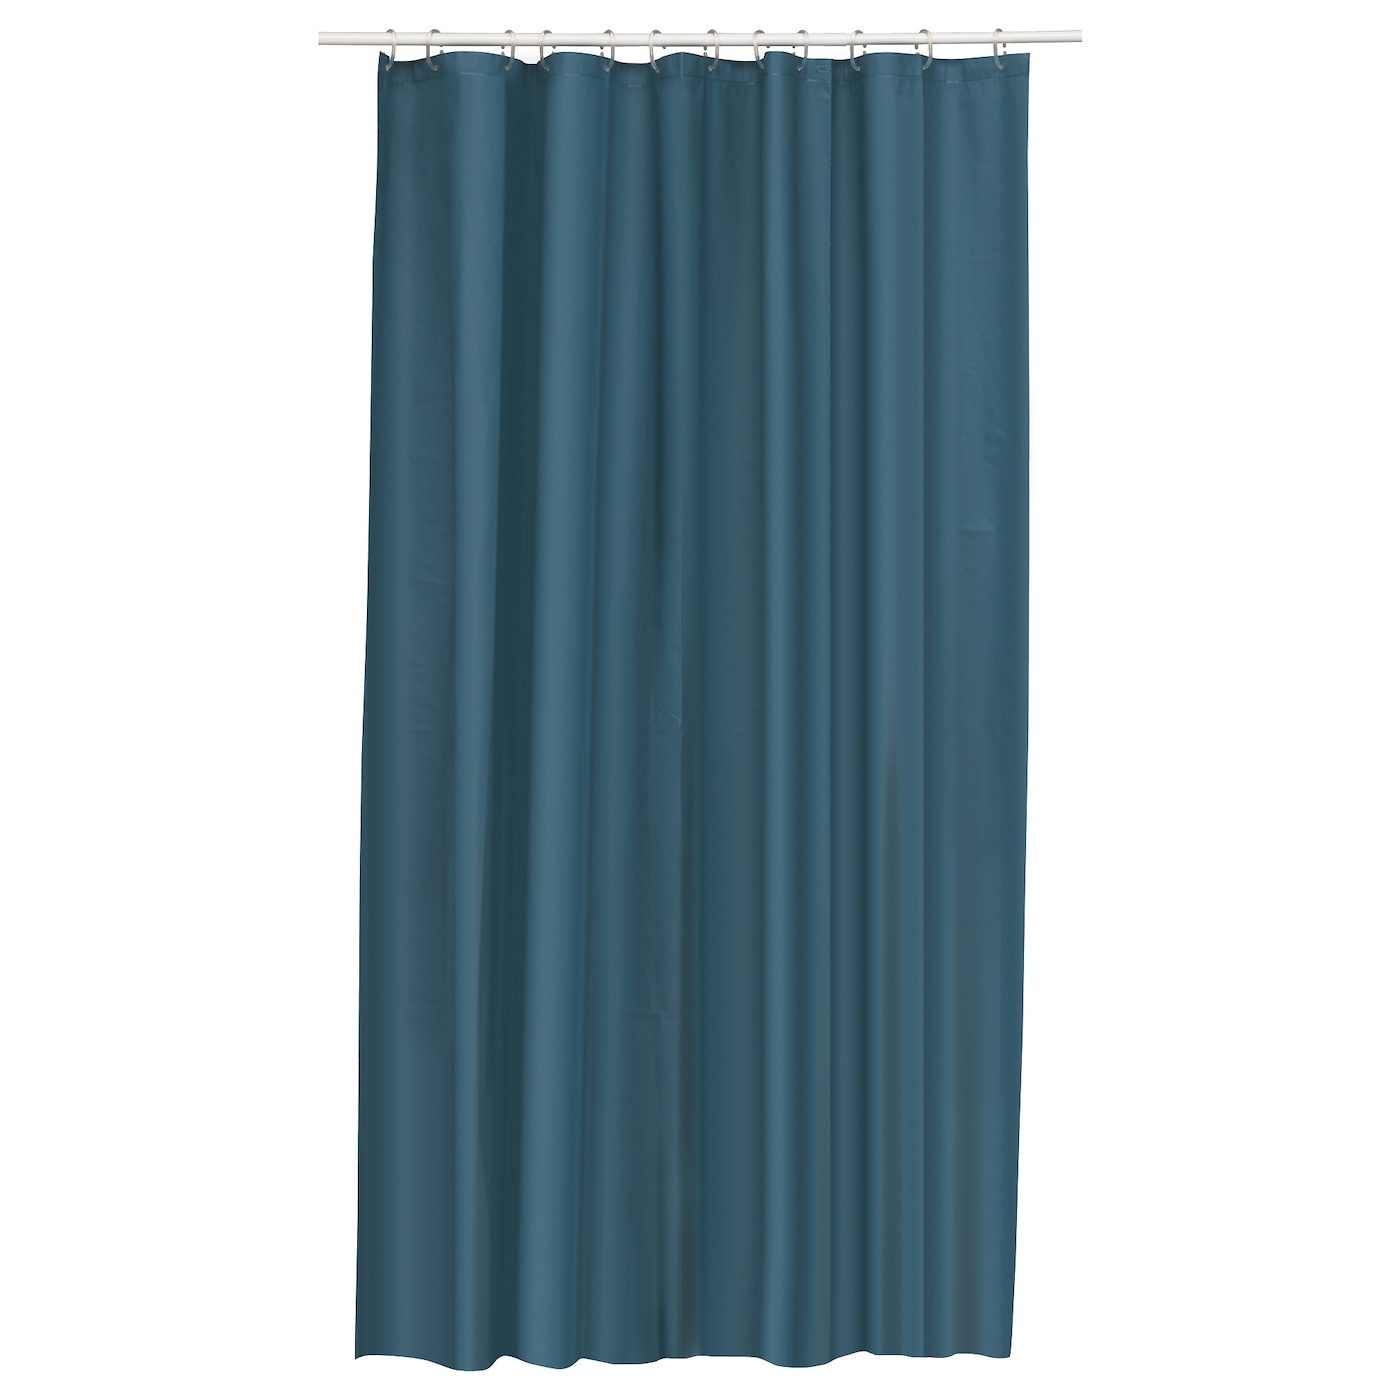 Clear fish shower curtain - Ikea Eggegrund Shower Curtain Can Be Easily Cut To The Desired Length